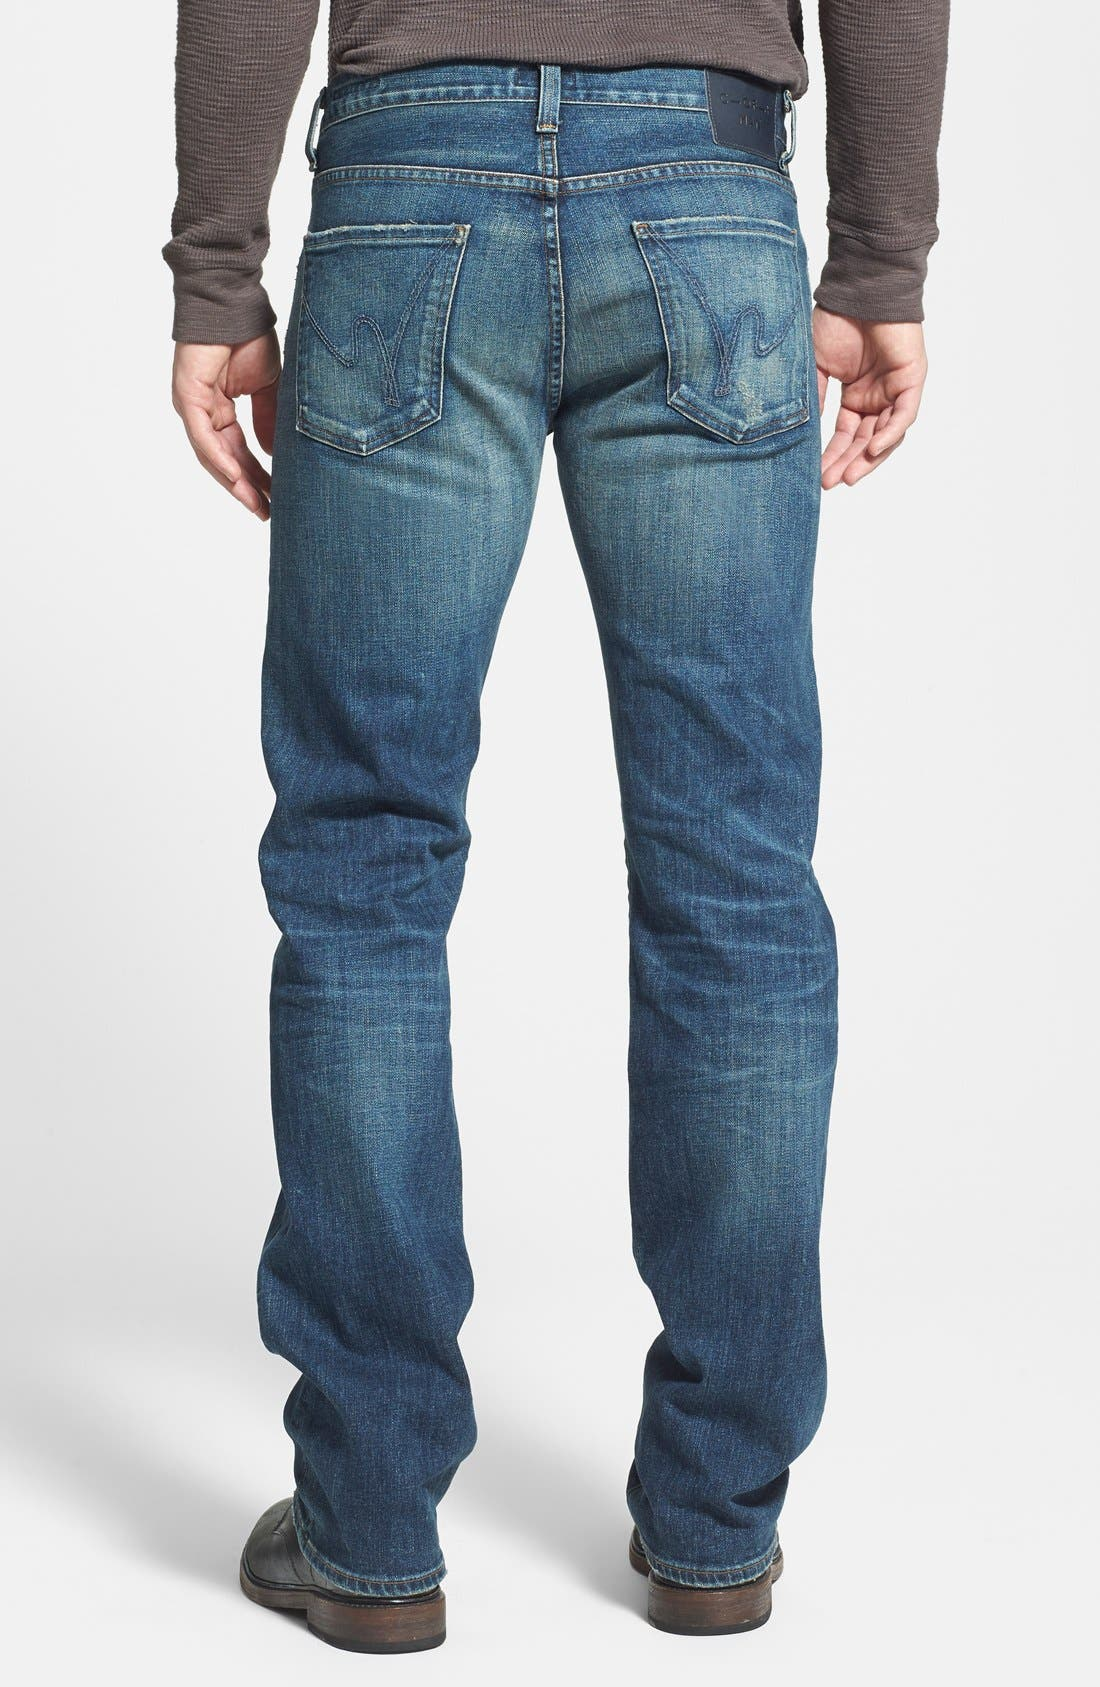 'Sid' Classic Straight Leg Jeans,                             Alternate thumbnail 2, color,                             429